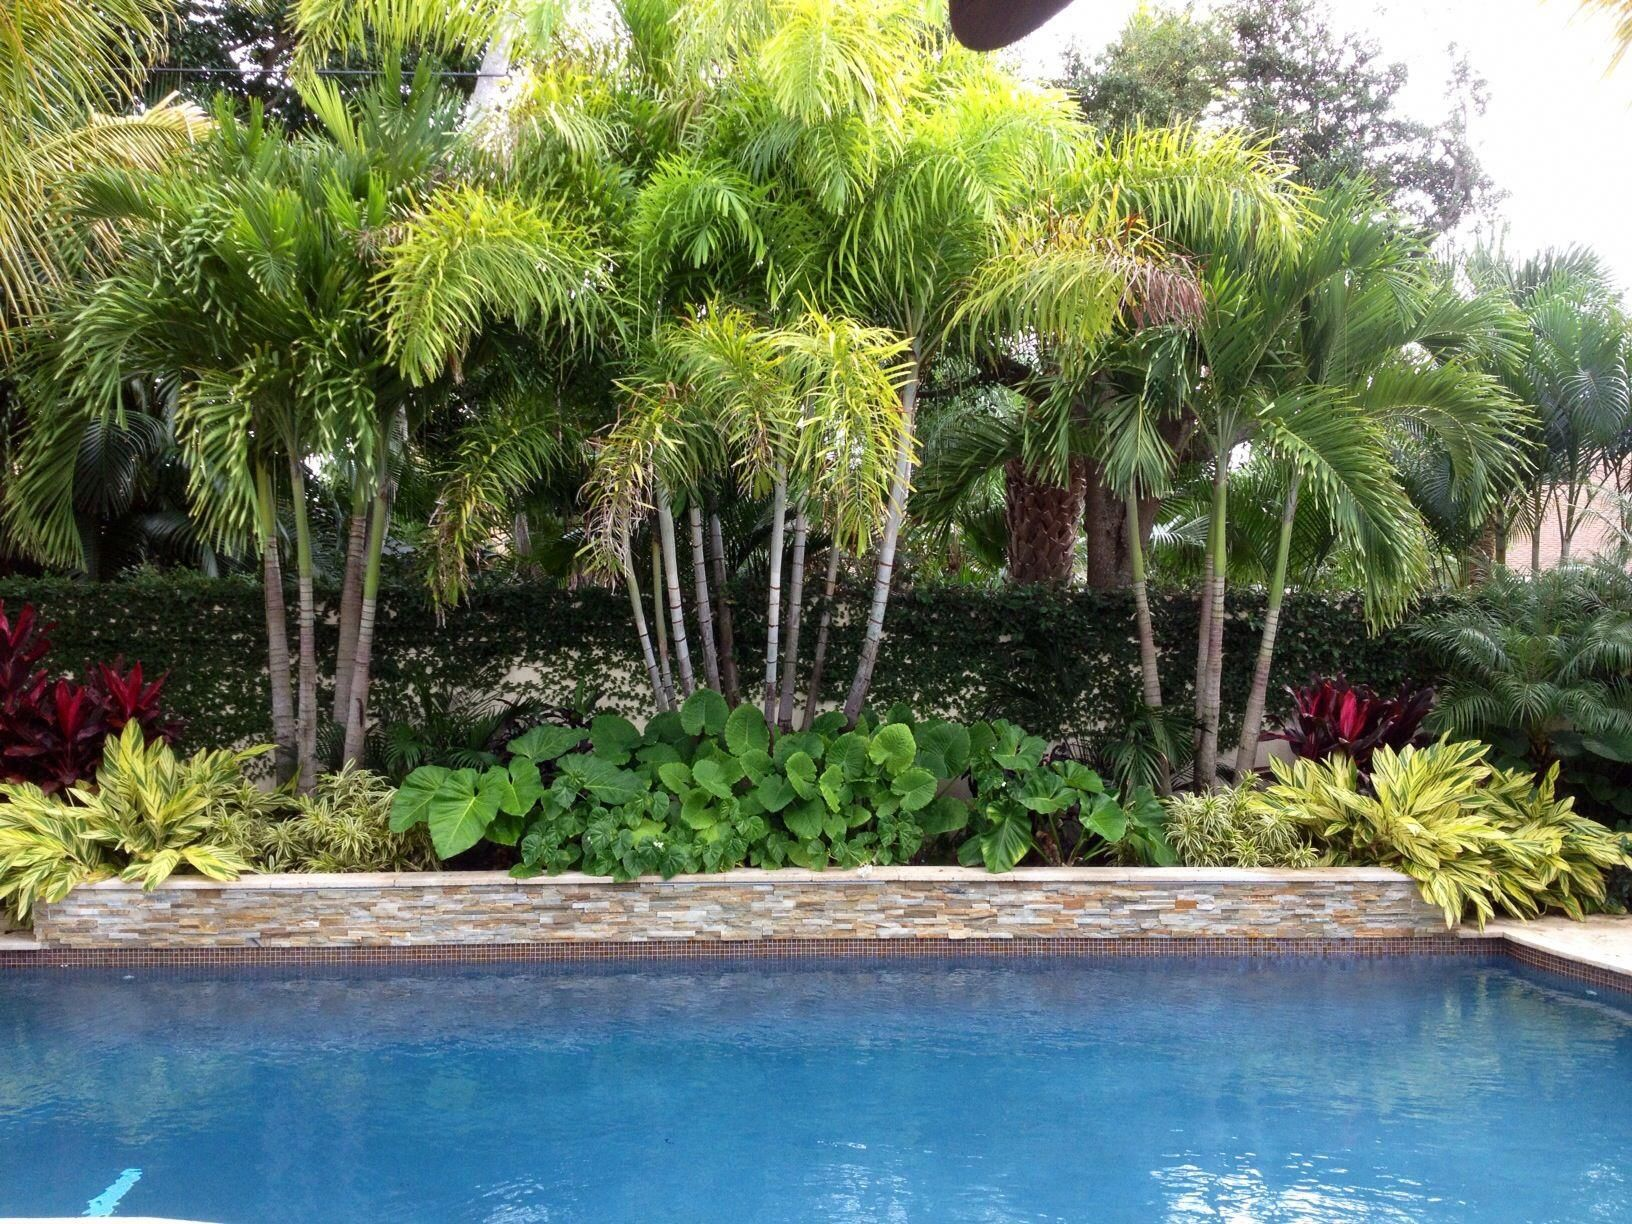 Creating A Tropical Oasis With Limited Space Can Be